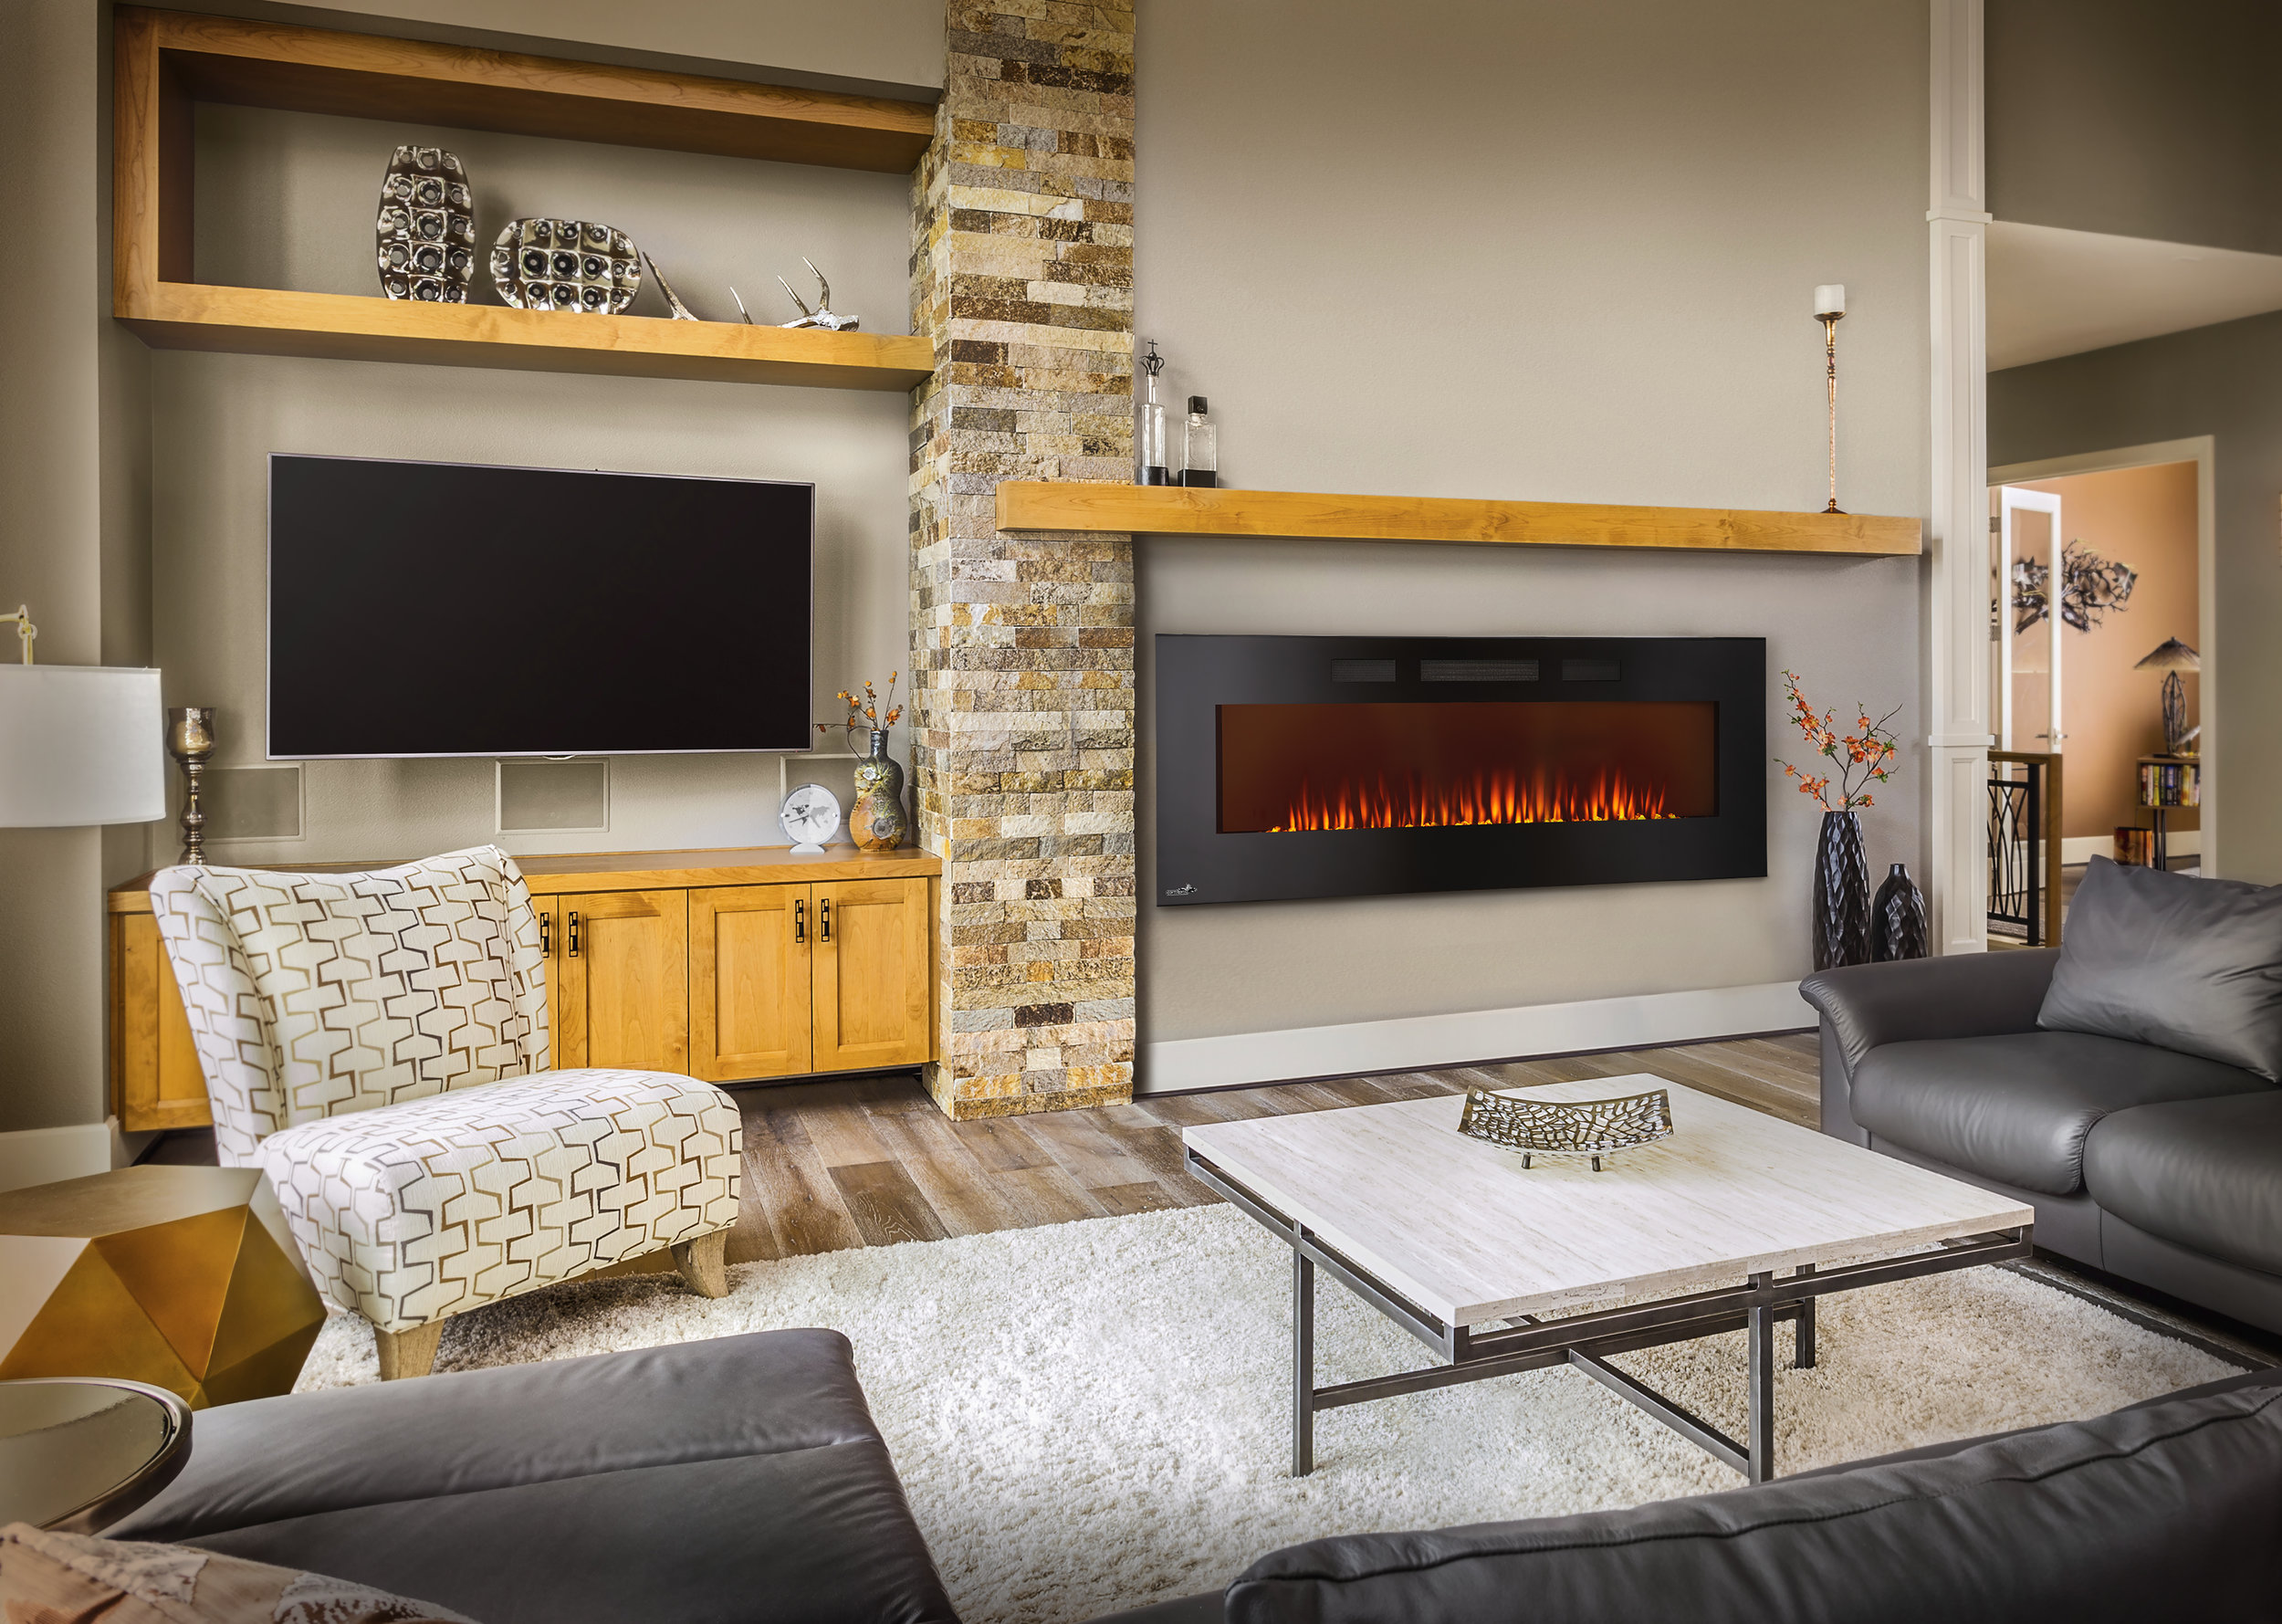 CEFL50H-living-room-continental-fireplaces (1).jpg